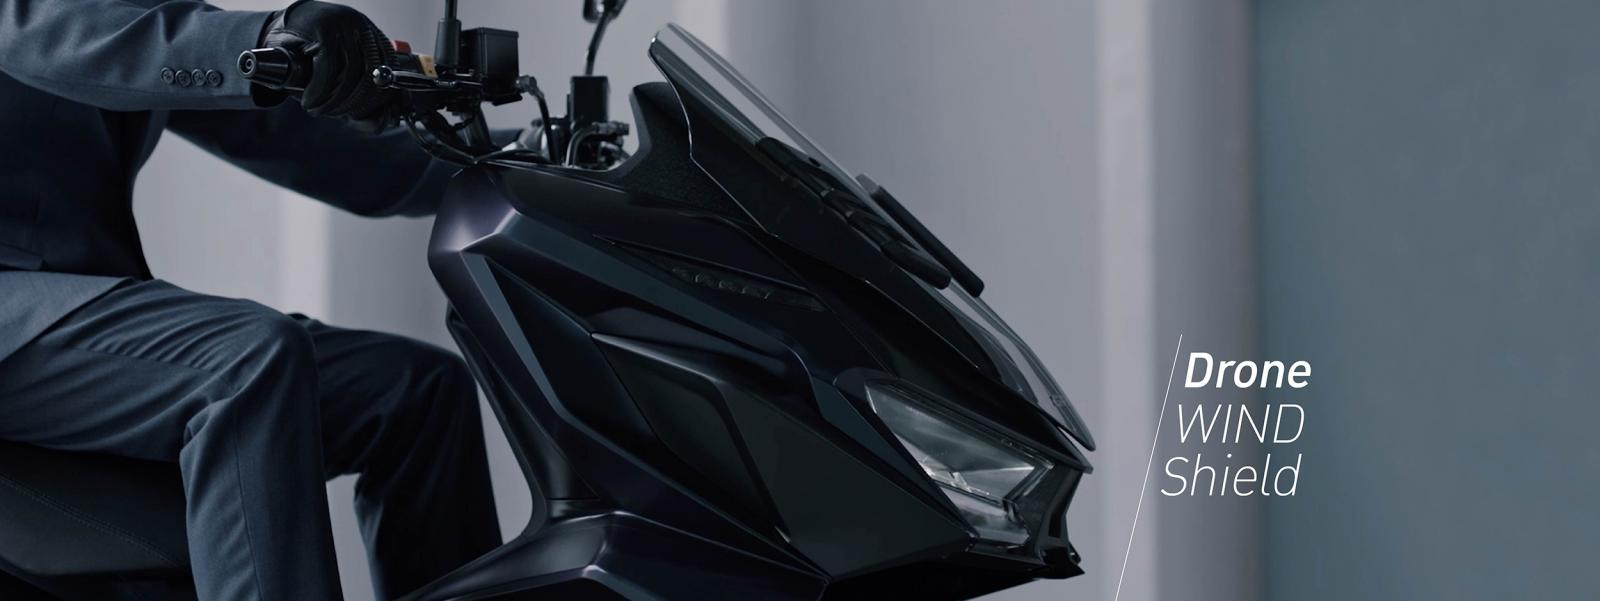 2021 GPX Drone 150